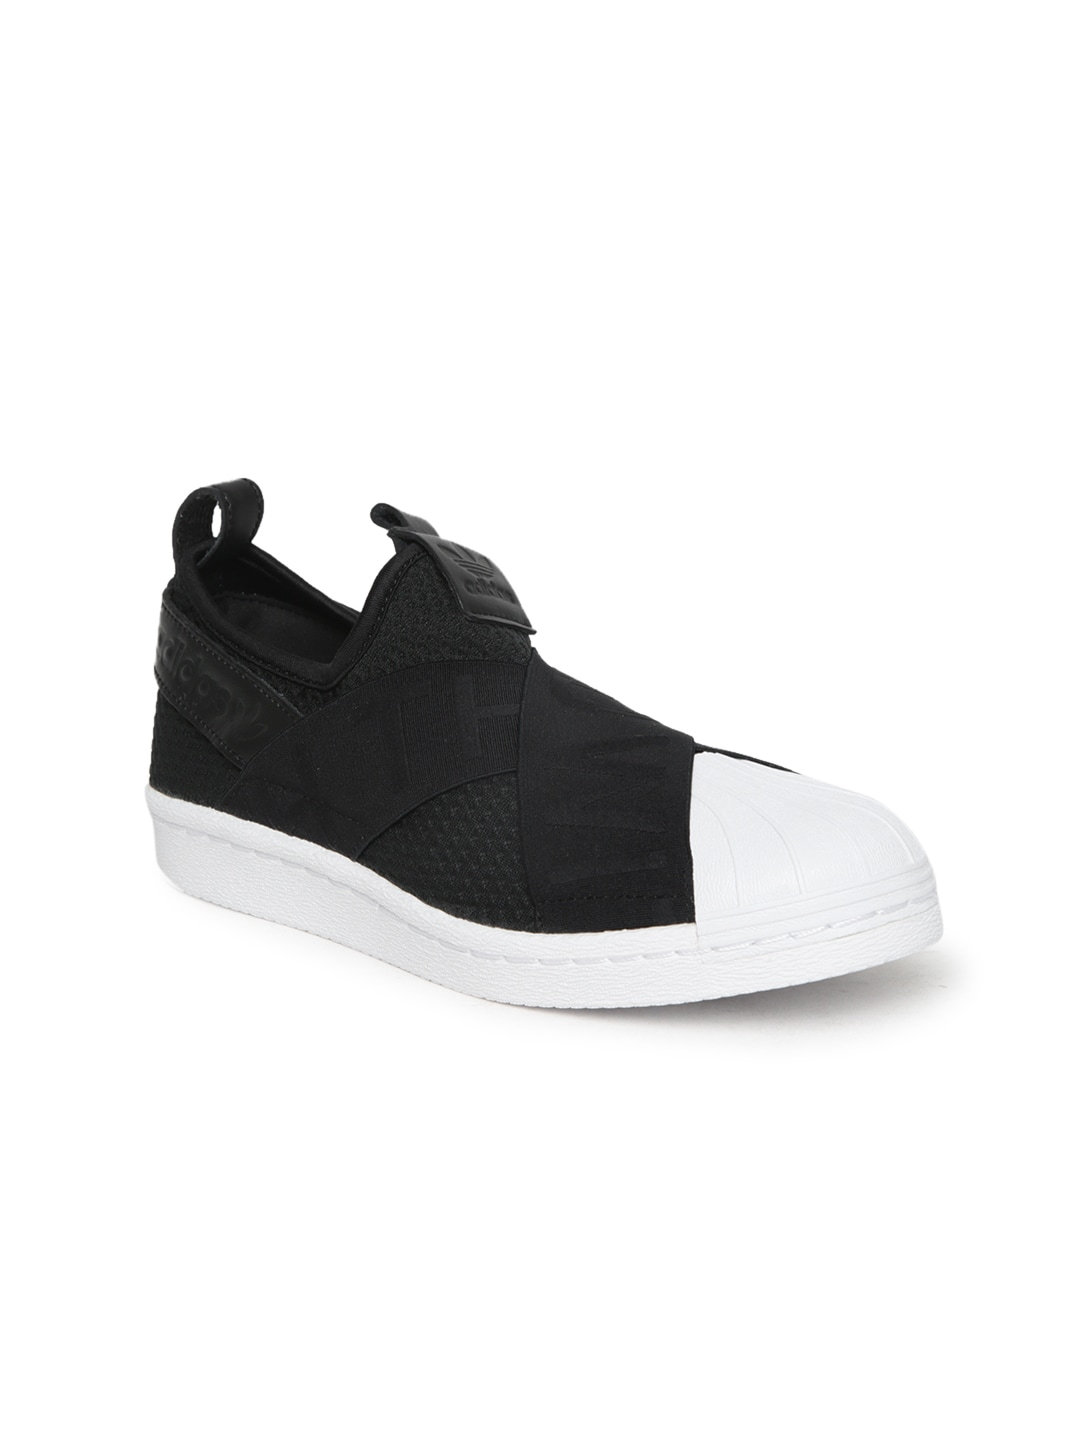 new arrival e6f5e 78e24 Women s Adidas Shoes - Buy Adidas Shoes for Women Online in India